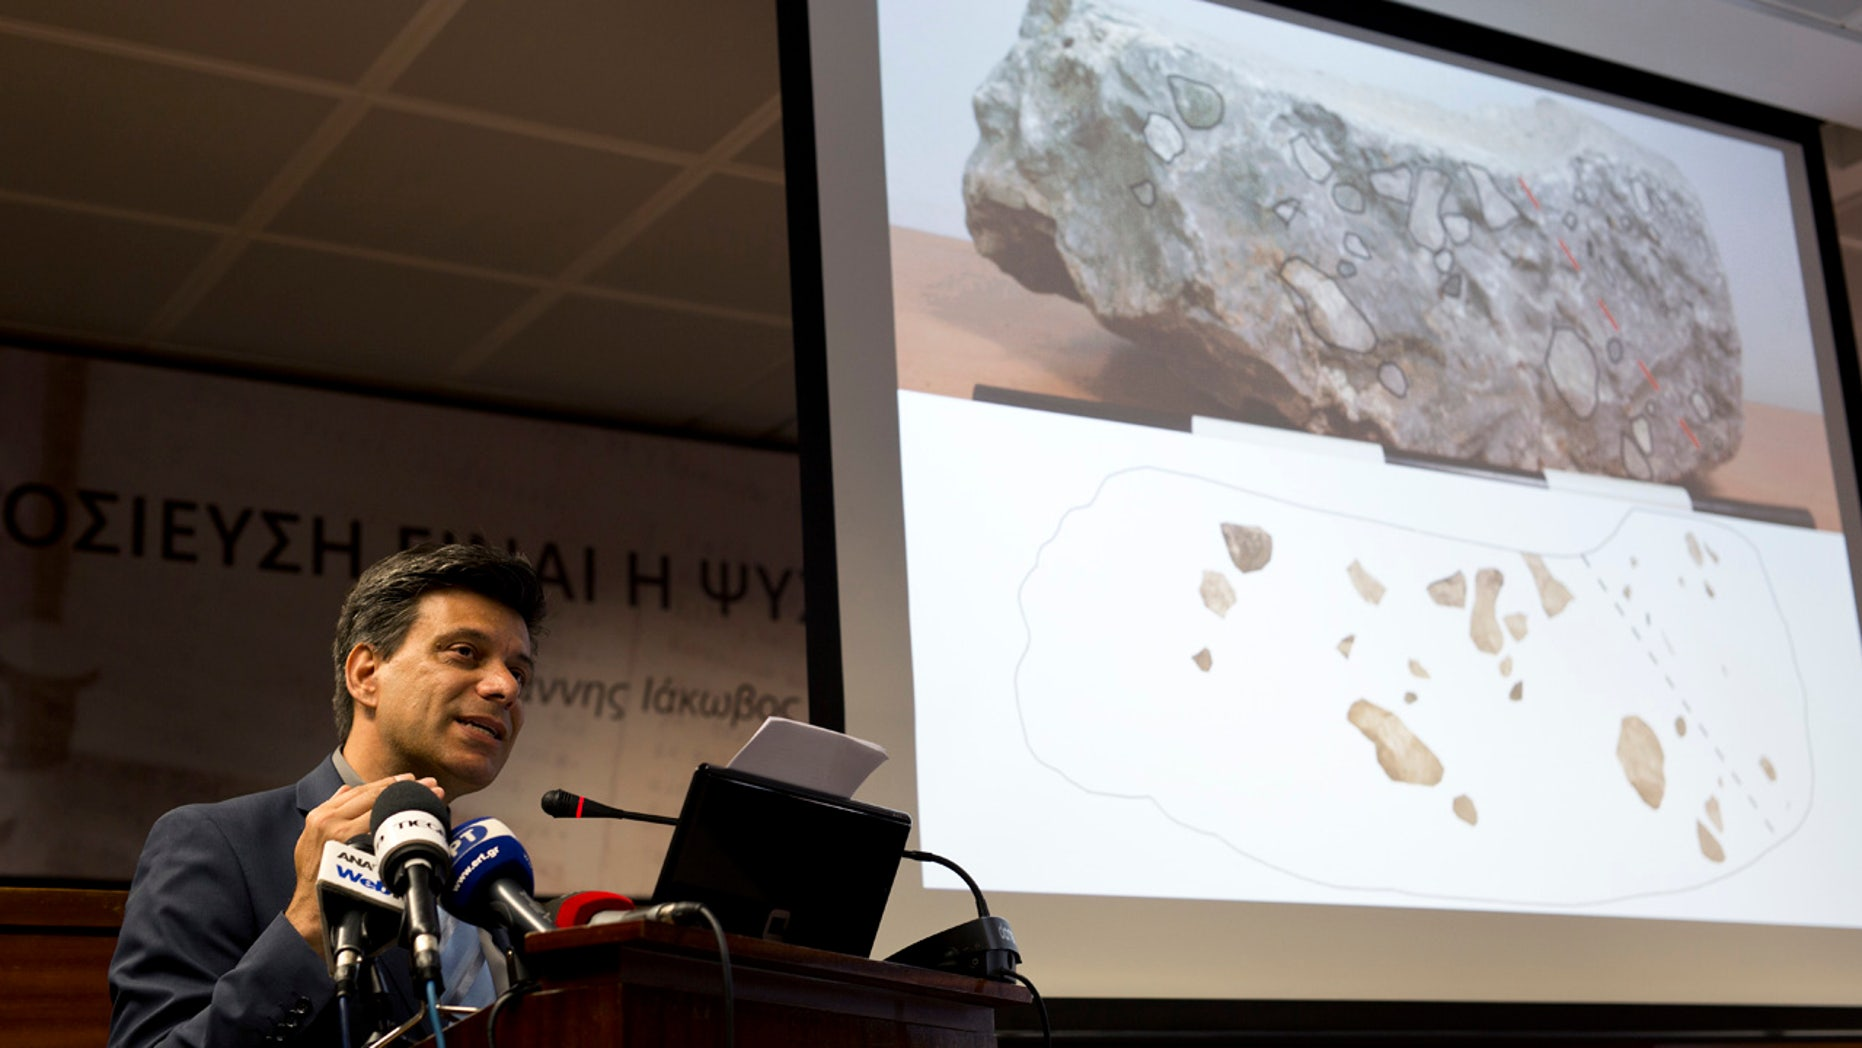 June 14, 2016: Greek archaeologist Christofilis Maggidis speaks as a photograph of a stone he believes belonged to the lost royal throne in the ancient palace of Mycenae, heart of the Mycenaean civilization, in southern Greece, during a press conference in Athens.